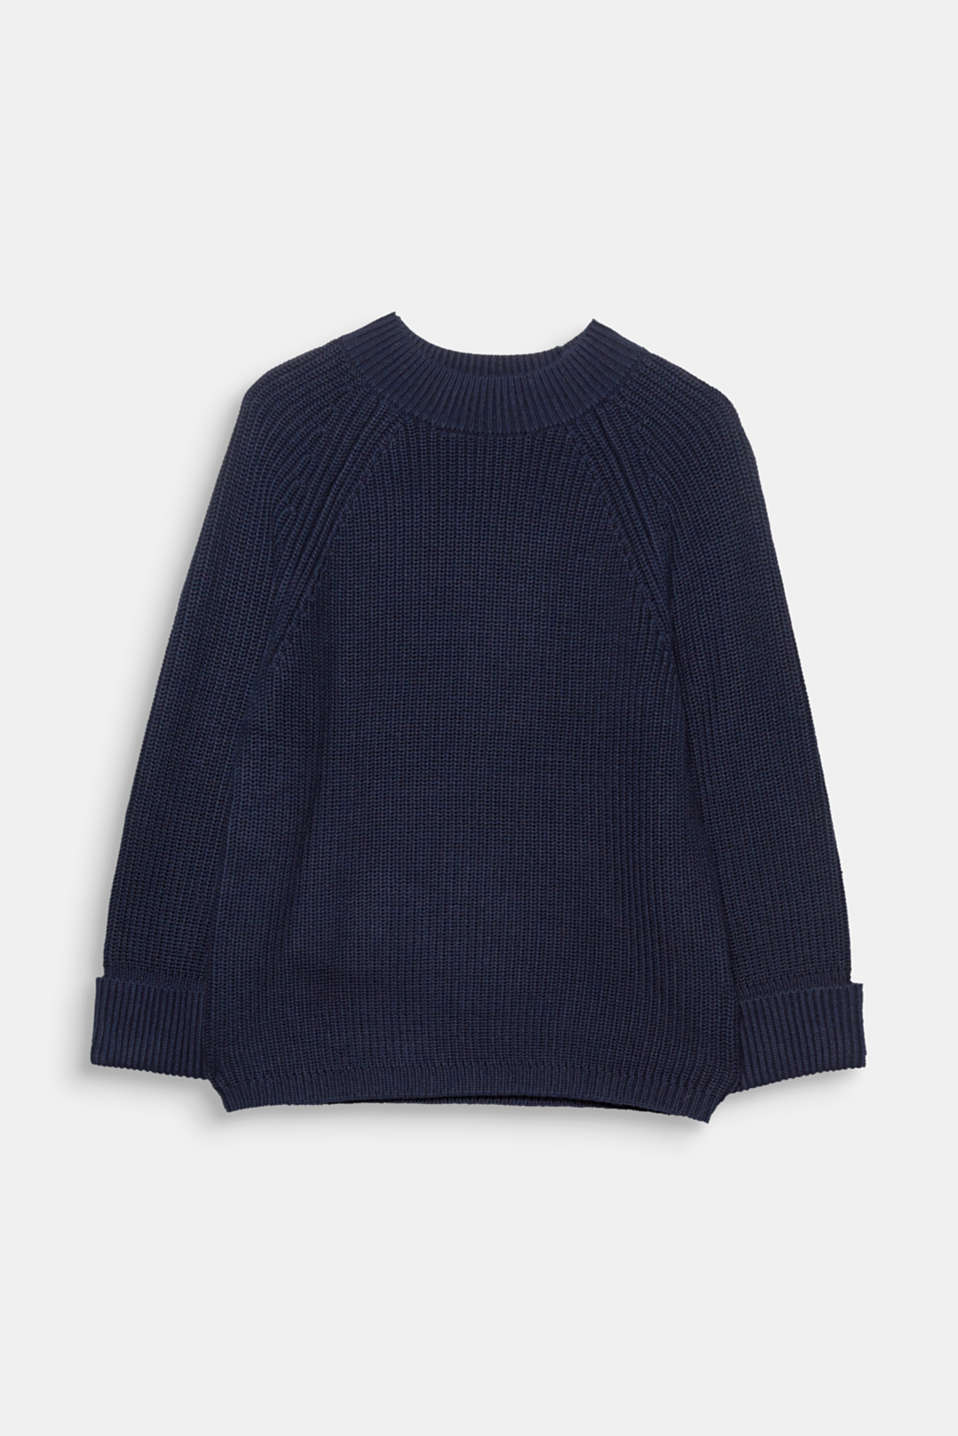 A classic with a new twist: robust turtleneck jumper knitted in half cardigan stitch with cropped roll-up sleeves!